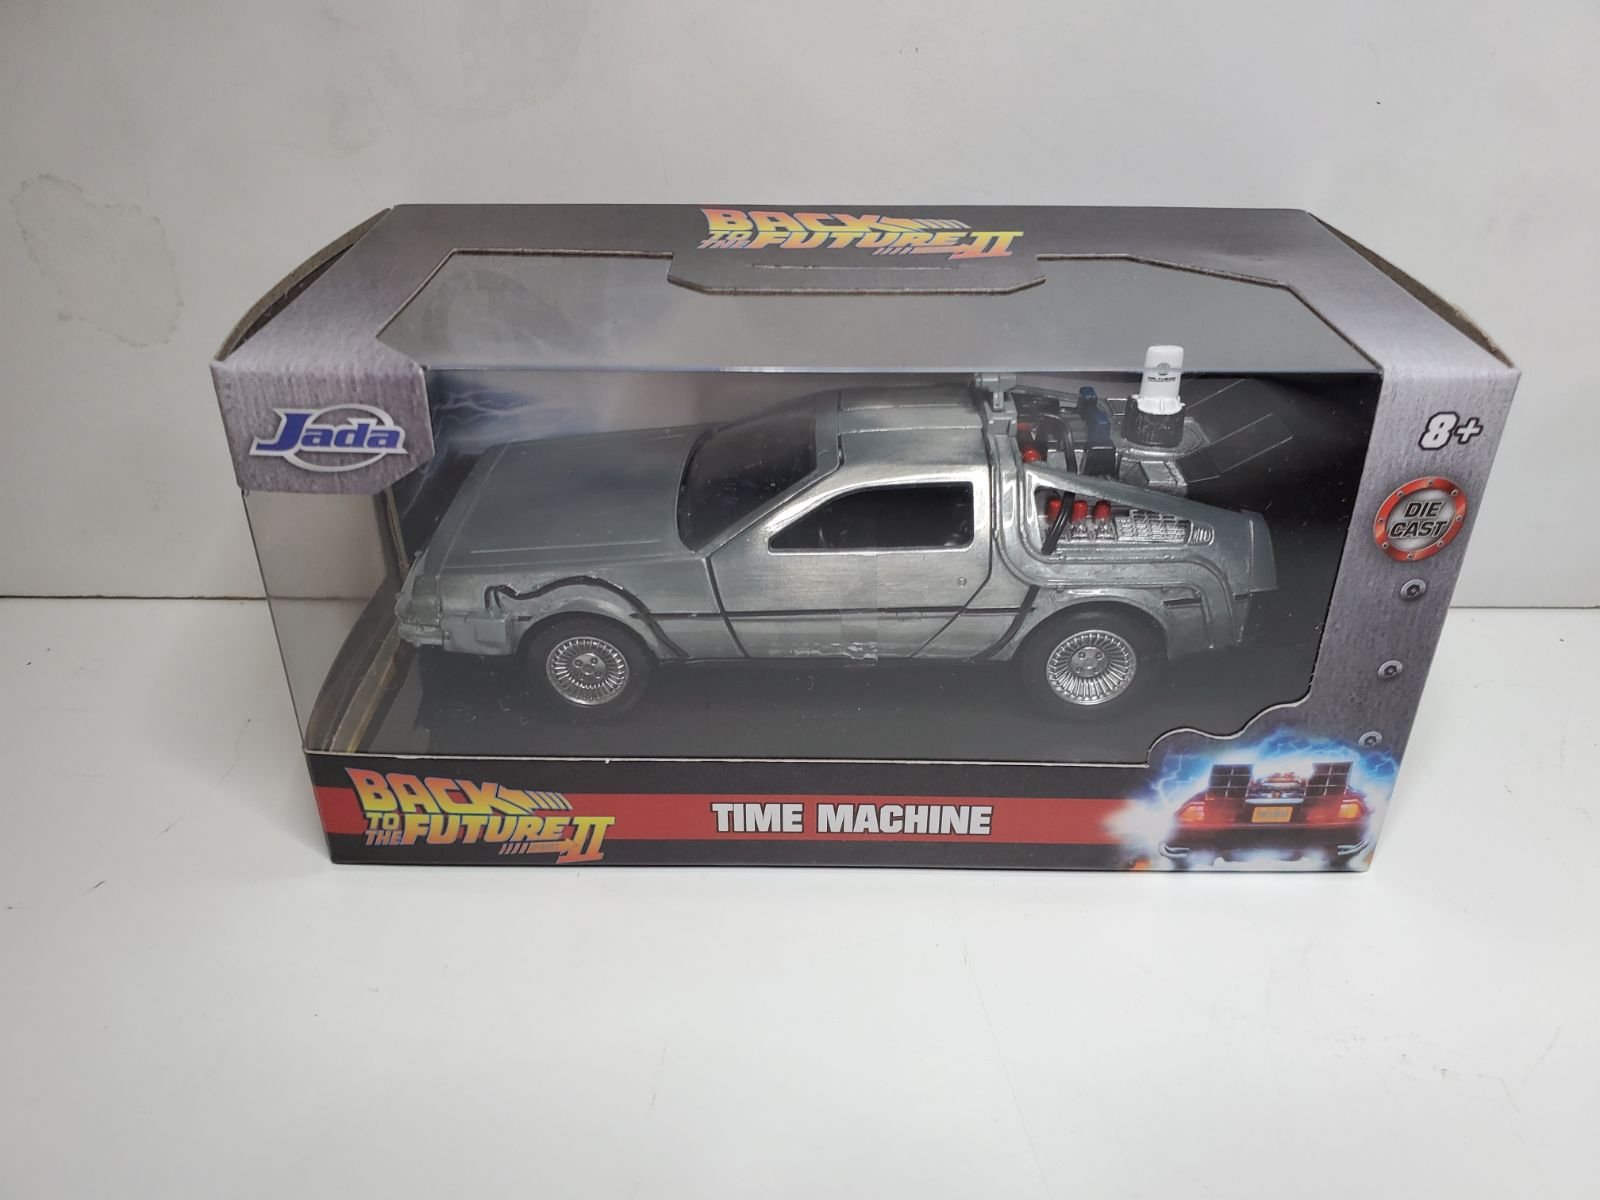 Back to the future 2 time machine car